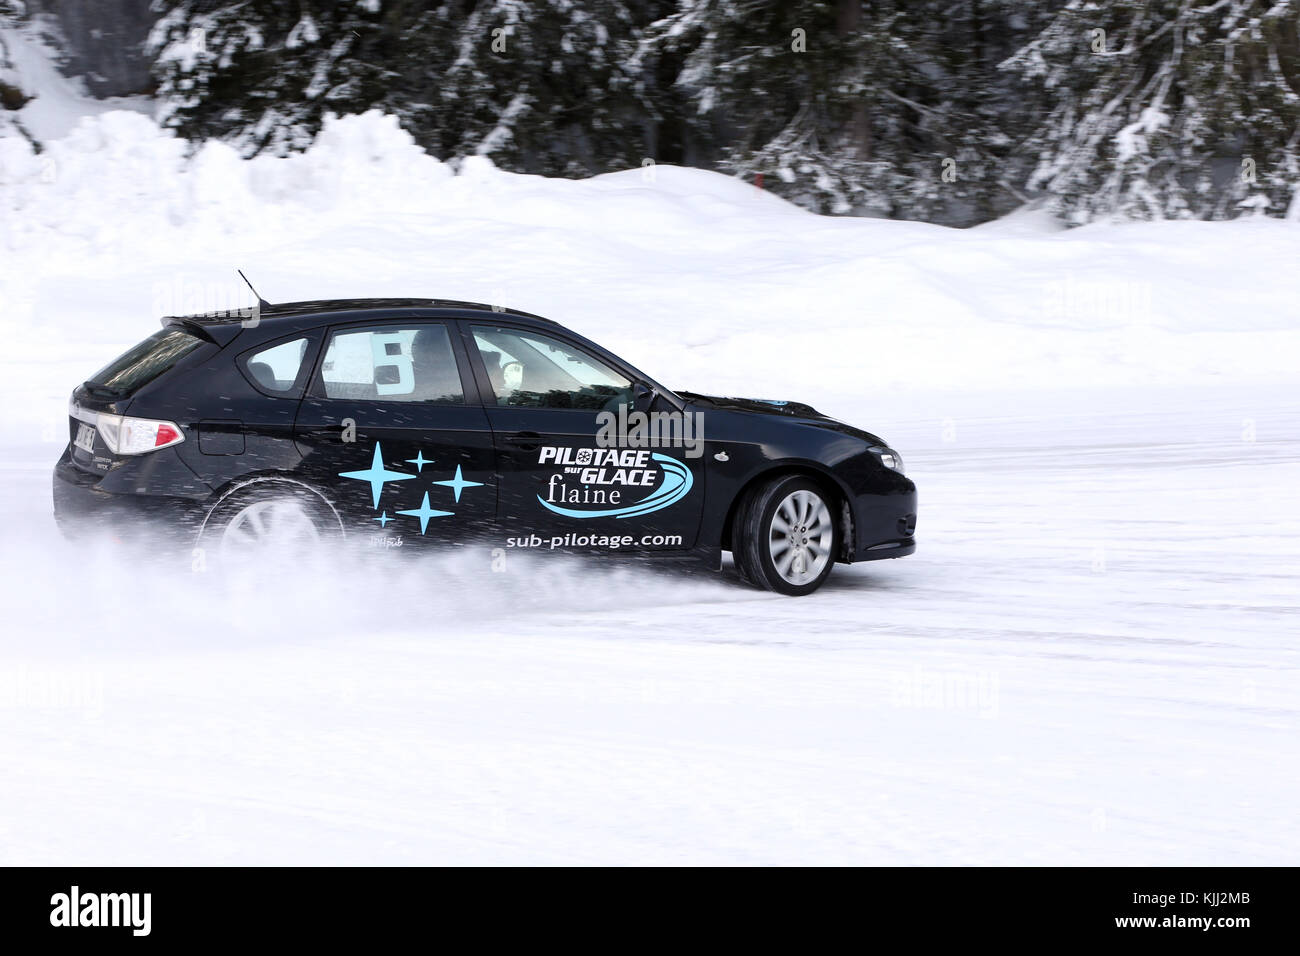 Flaine ice driving school.  France. - Stock Image